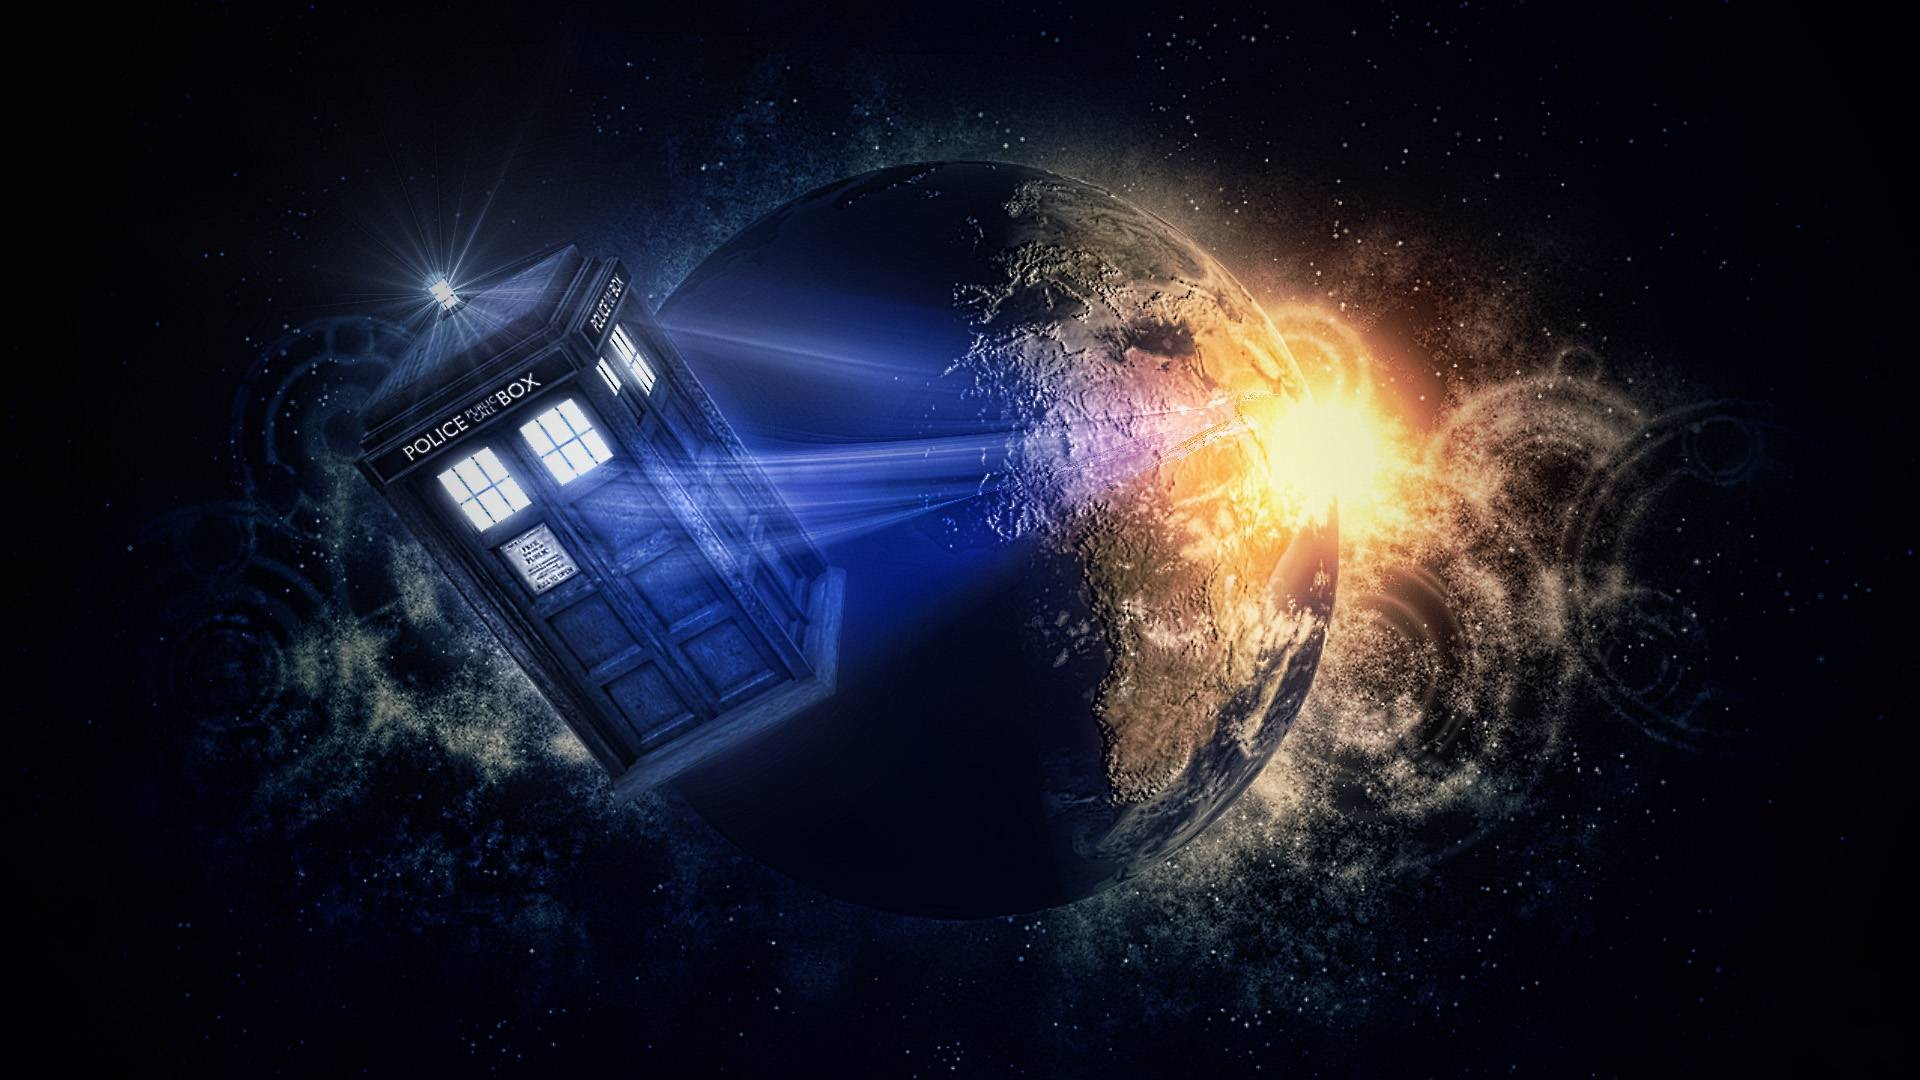 tardis images hd wallpaper - photo #29